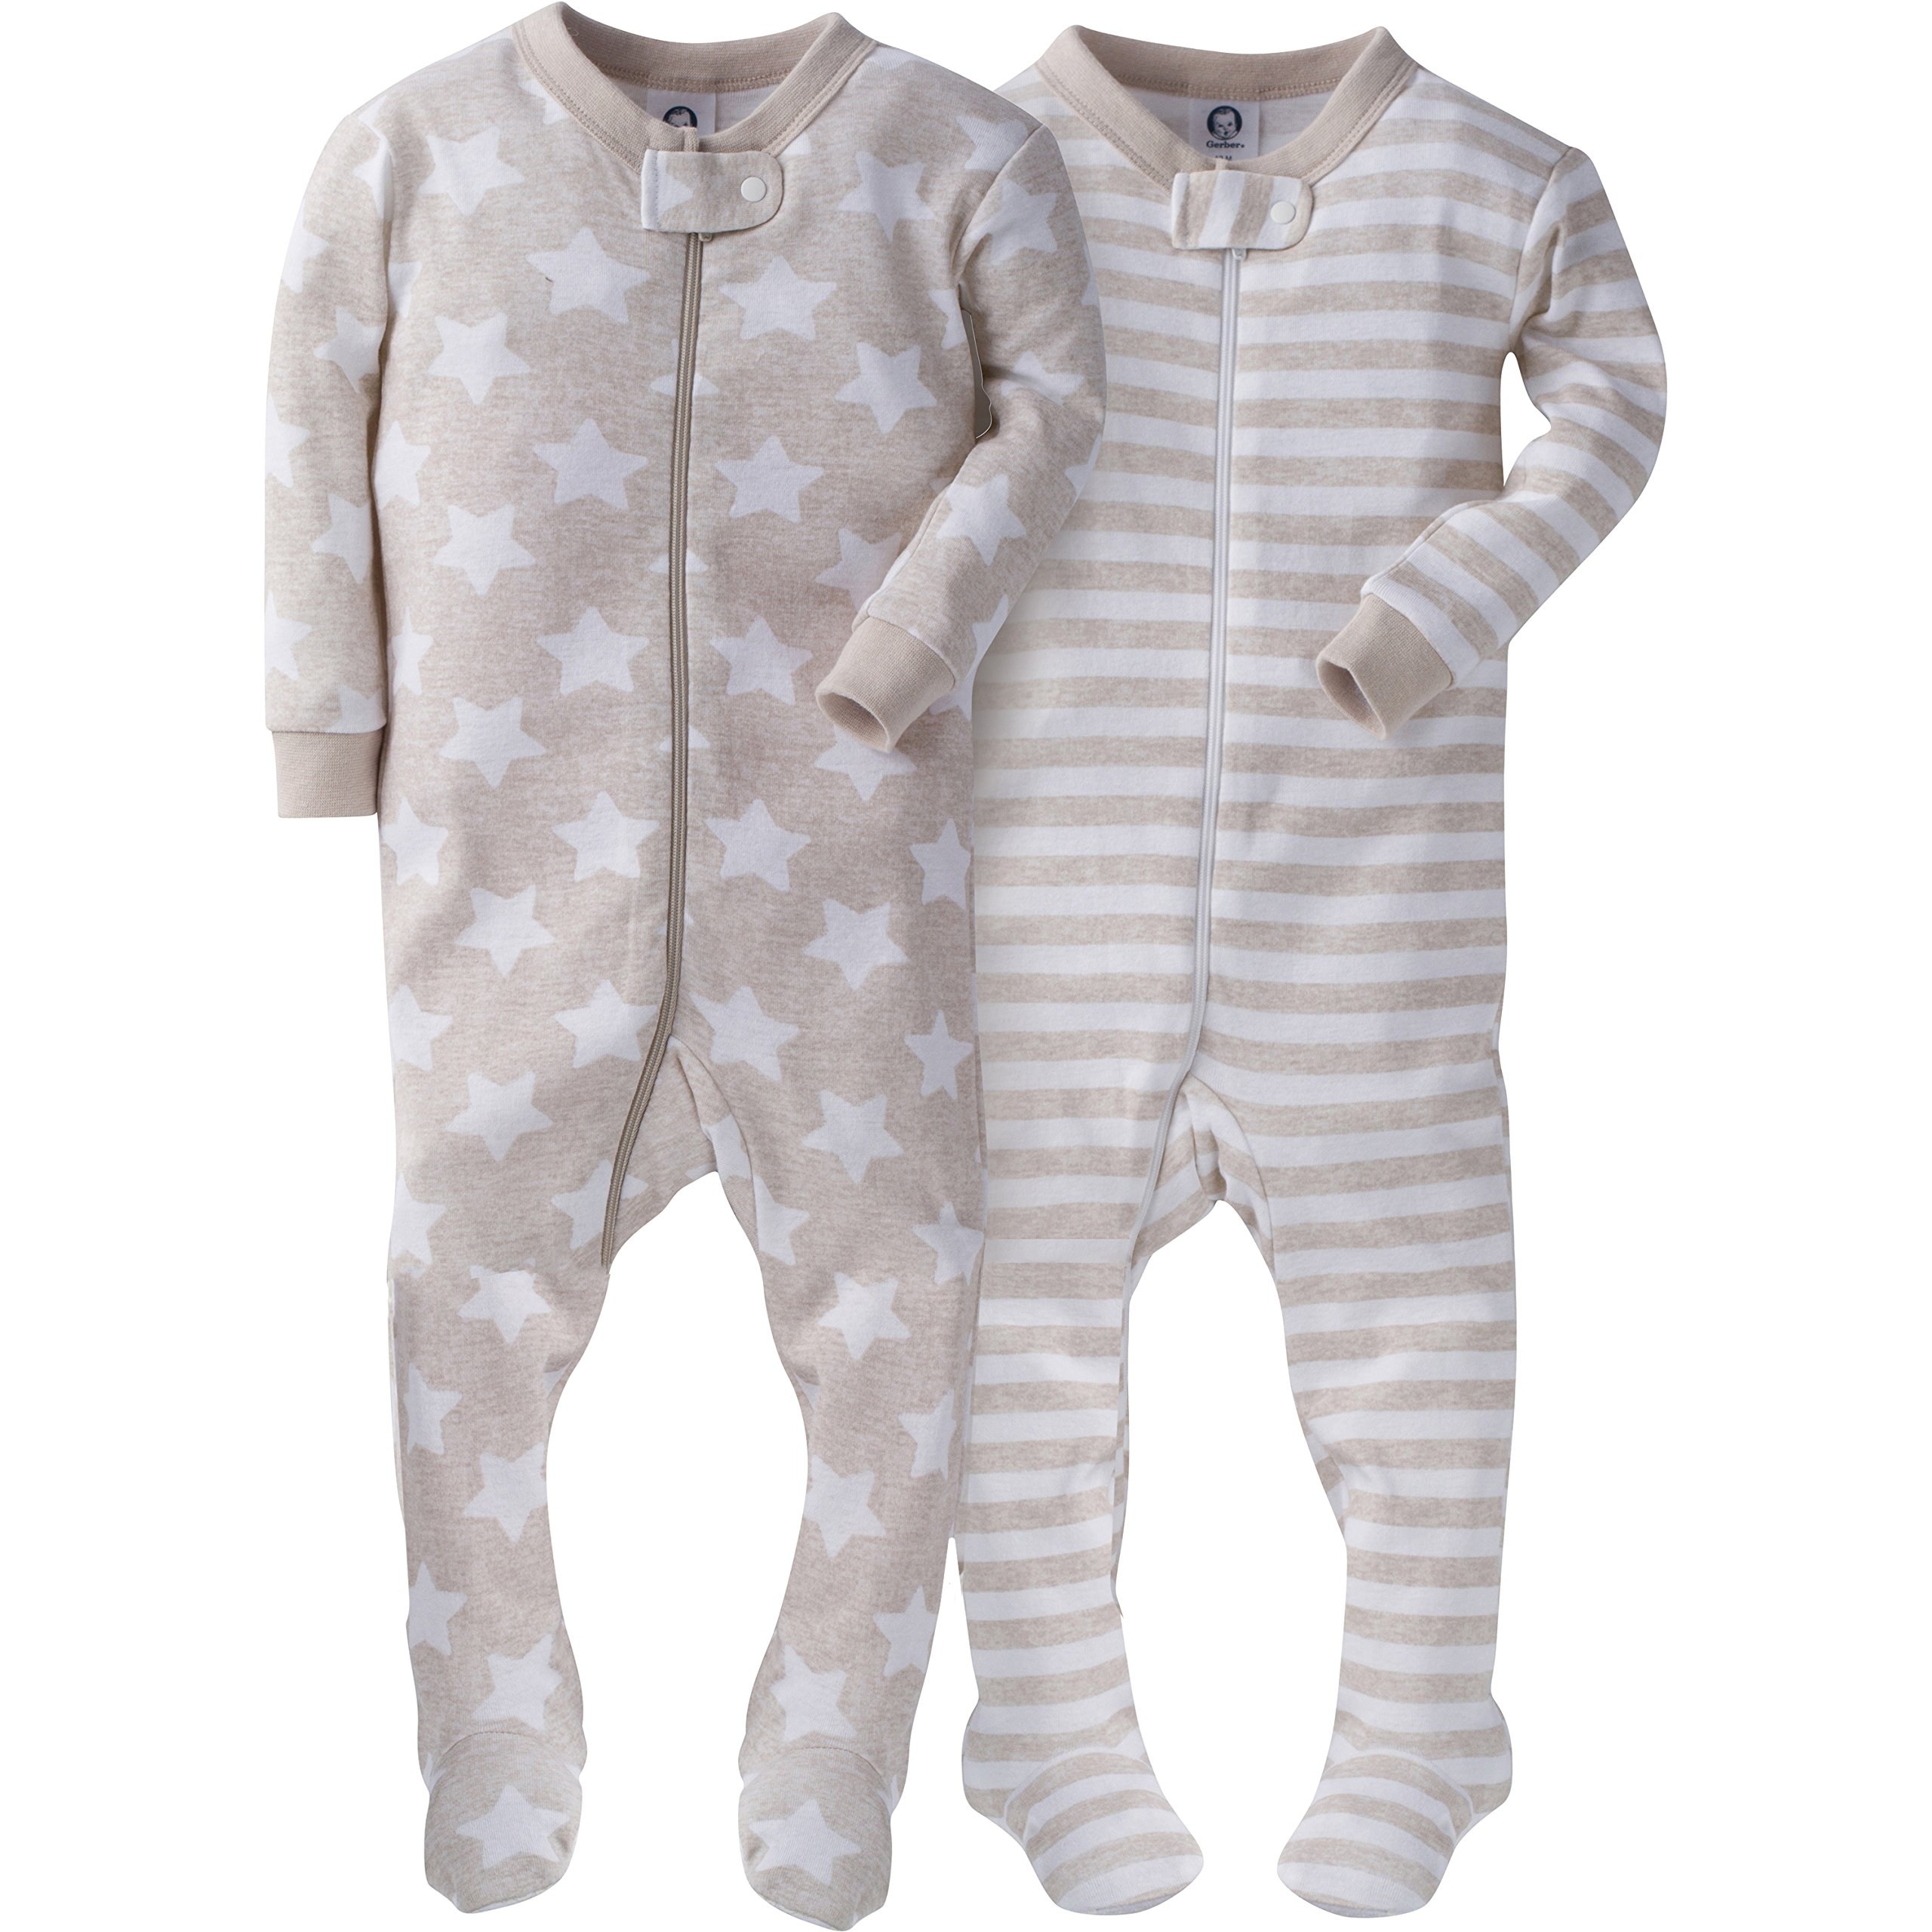 Gerber Baby Boys' 2 Pack Footed Sleeper, Stripes/Stars, 18 Months